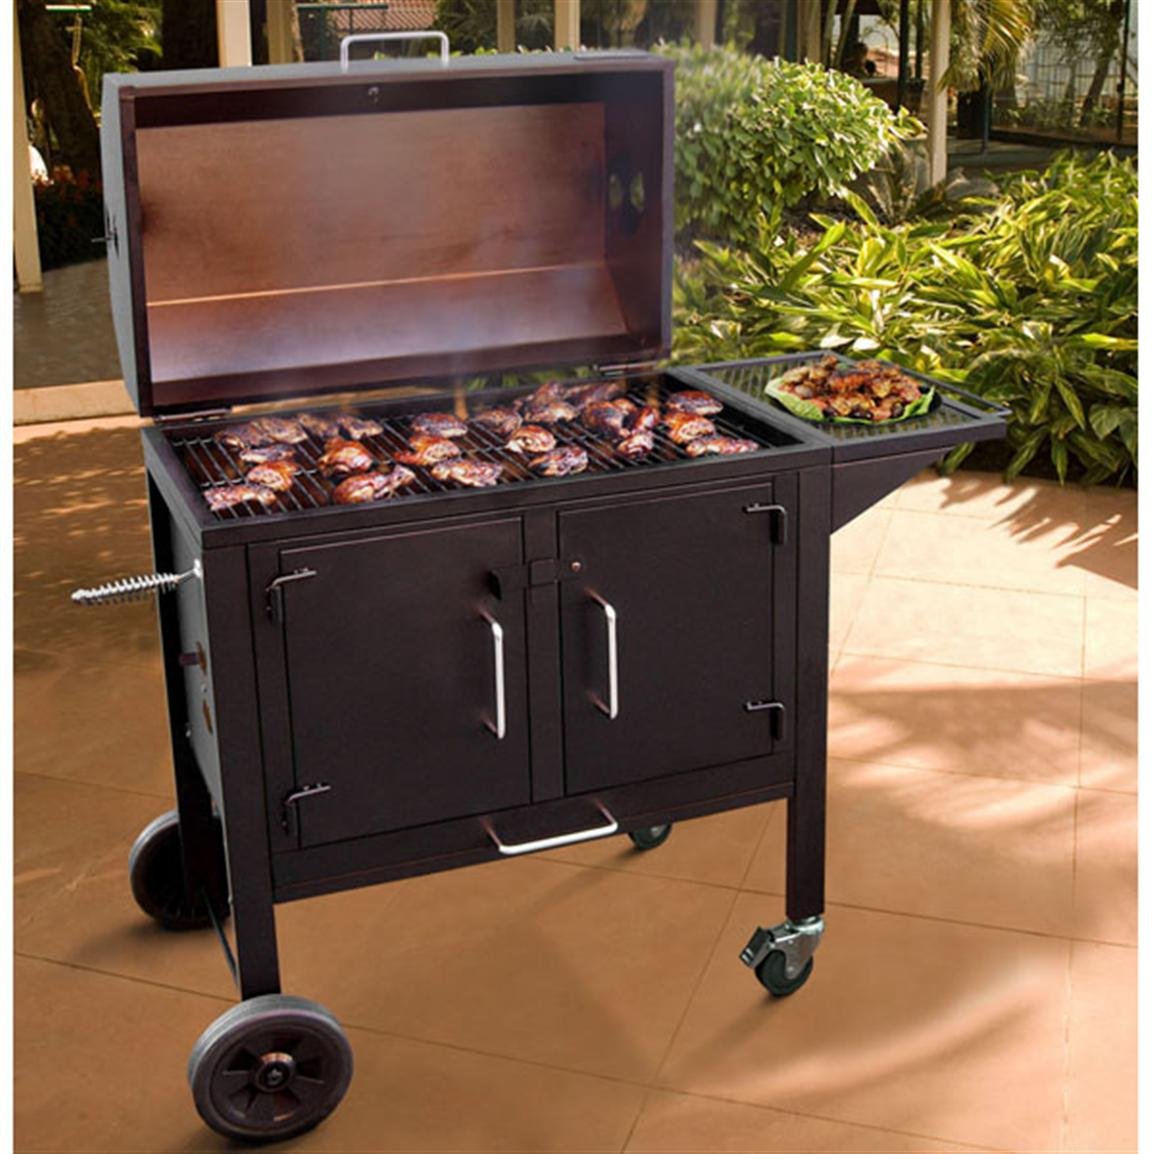 "Black Dog™ 28"" Grill from Landmann"